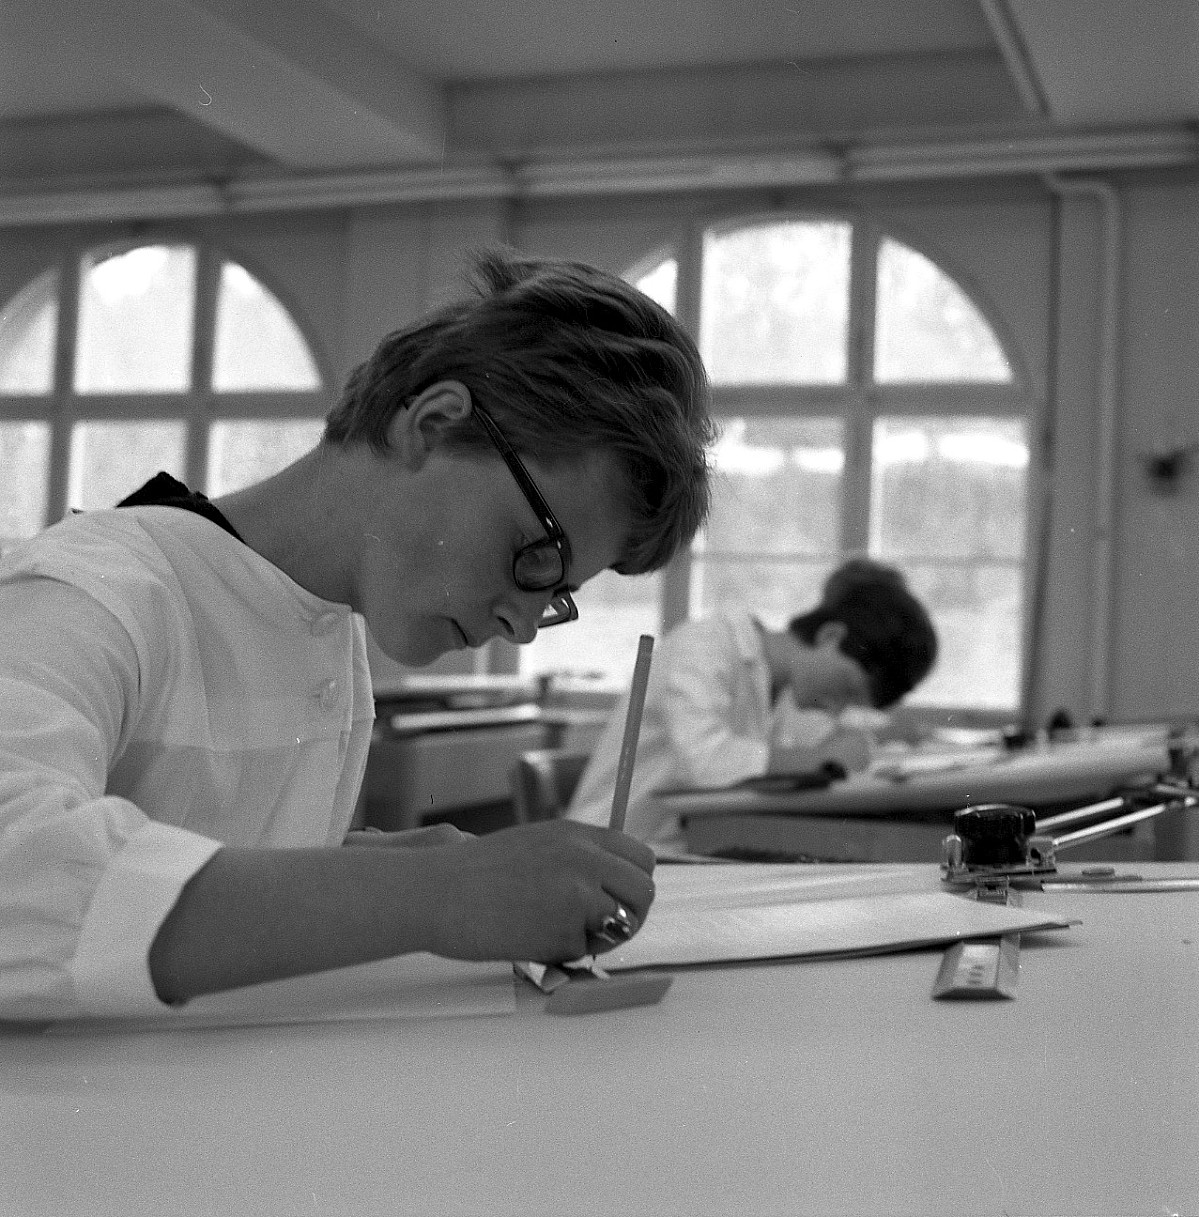 GFA 17/640482.6: Reportage draughtswomen education